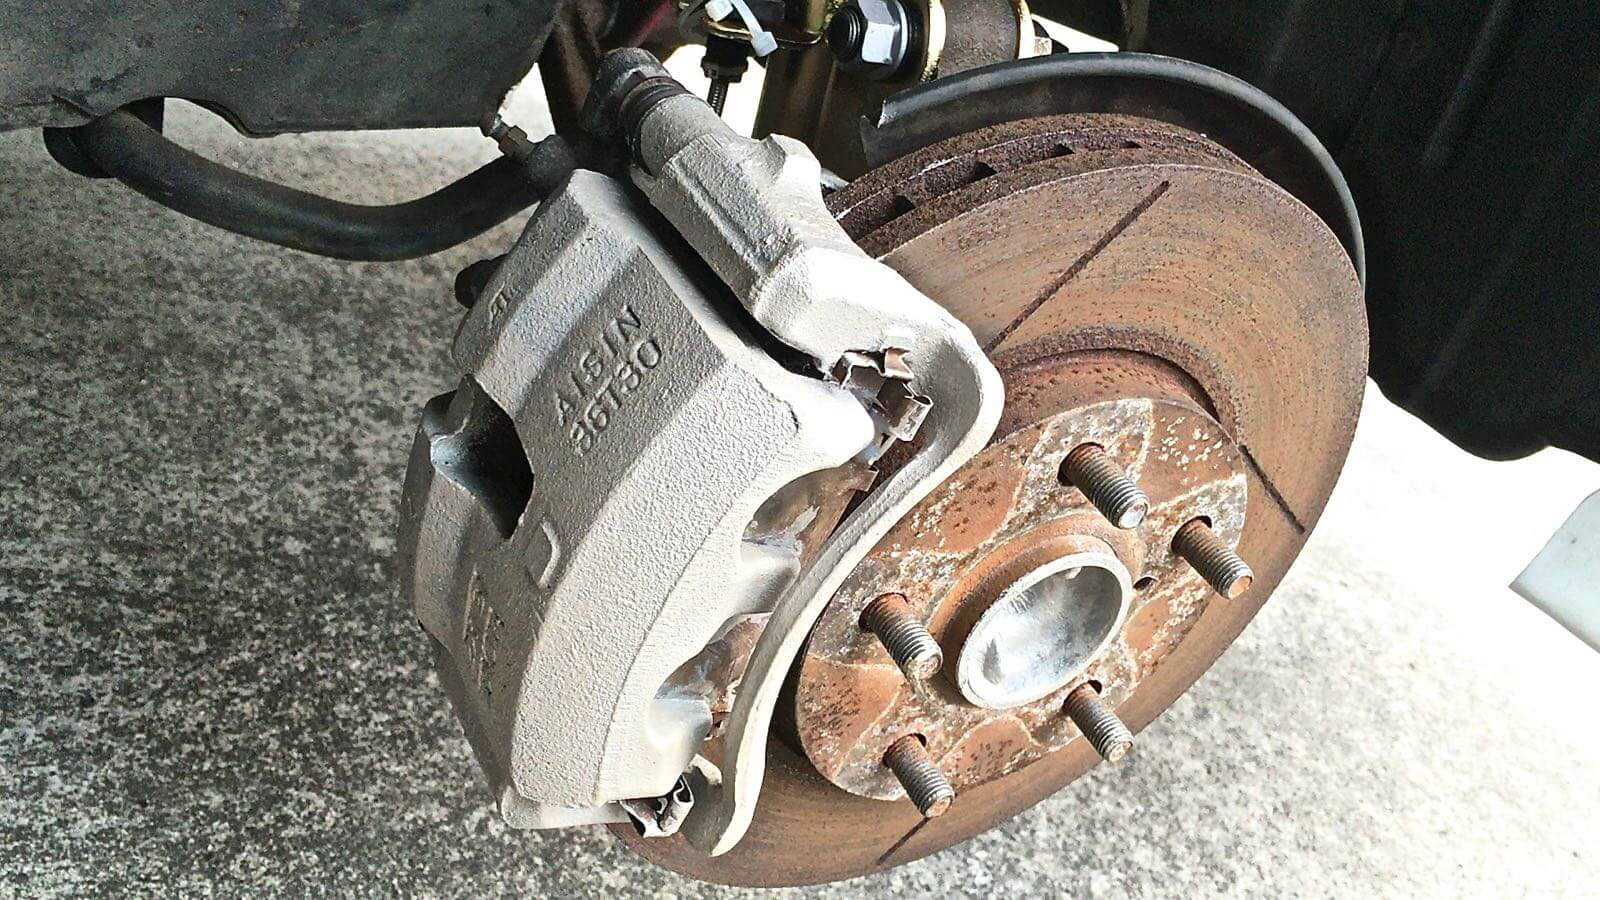 0143 MR2 Restore Plan  Part 16 11  SW20 Brake caliper Sabi killer pro after construction